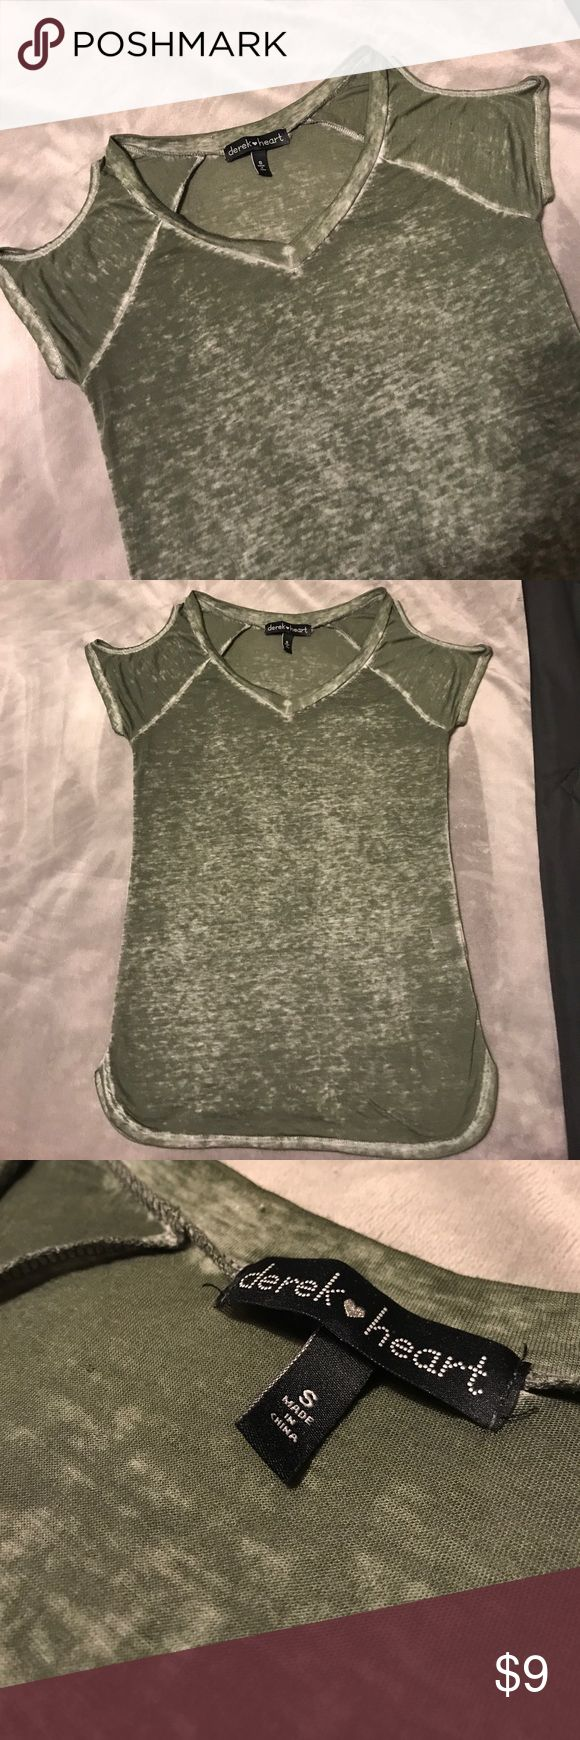 Derek Heart cold shoulder burnout shirt Great condition!!! Olive green in color. Super soft material...slightly sheer. Comes from smoke free, pet free home. Shipping days are Tuesday through Friday. Derek Heart Tops Tees - Short Sleeve